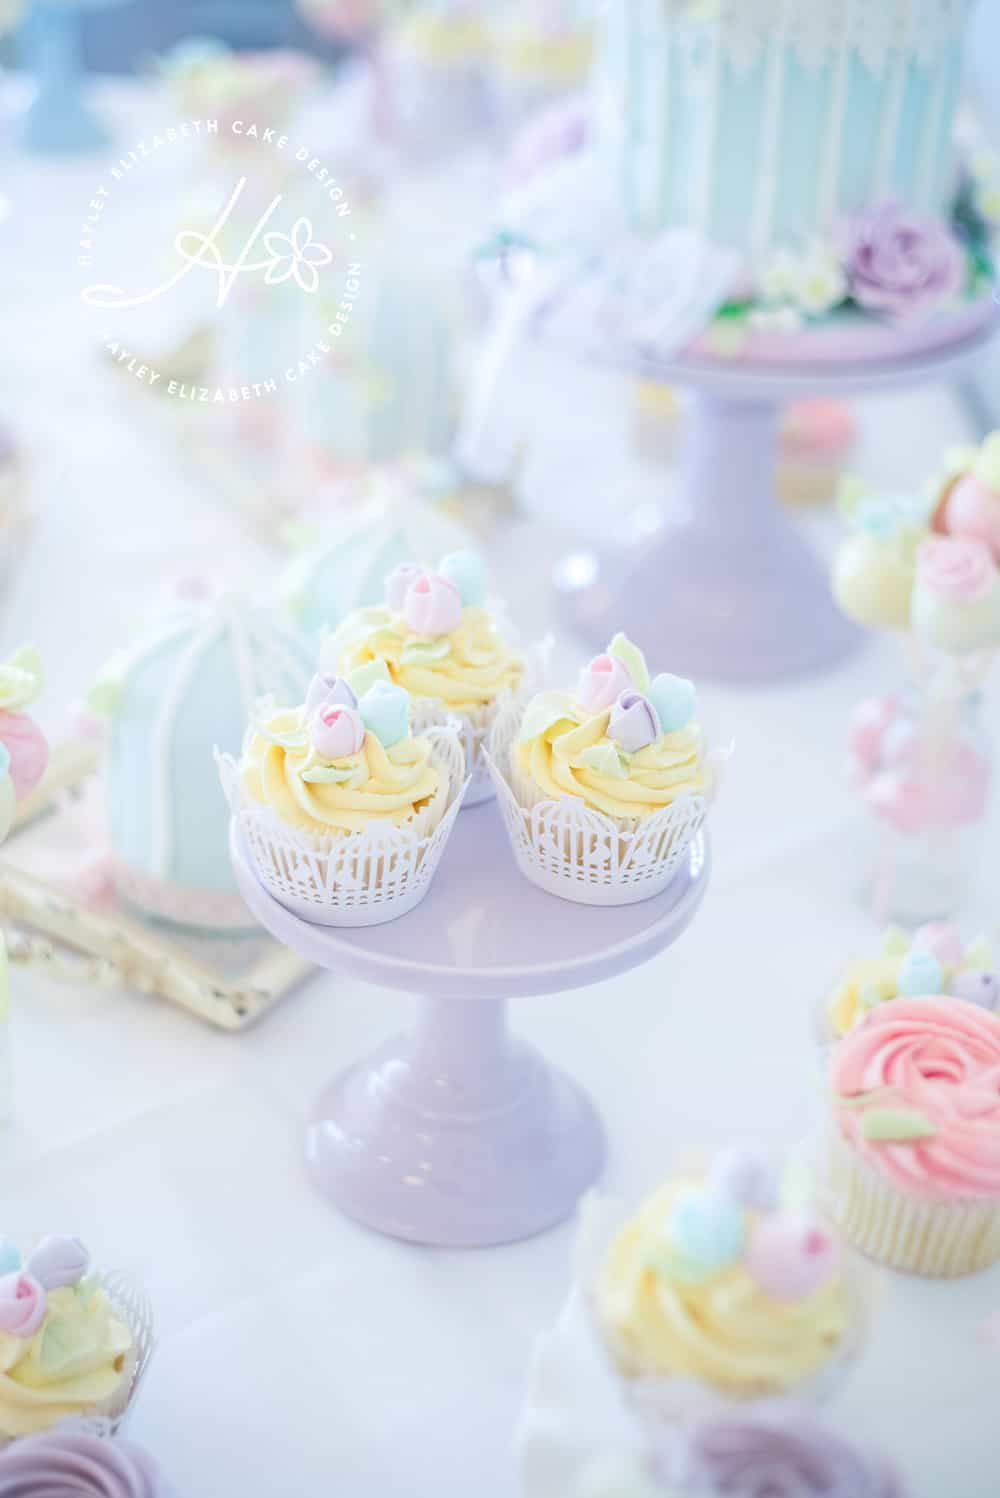 Pastel cupcakes, pastel sugar flowers, luxury wedding cake, cupcakes, cake pops, iced biscuits, mini cakes, dessert table, white wedding cake, wedding cake inspiration